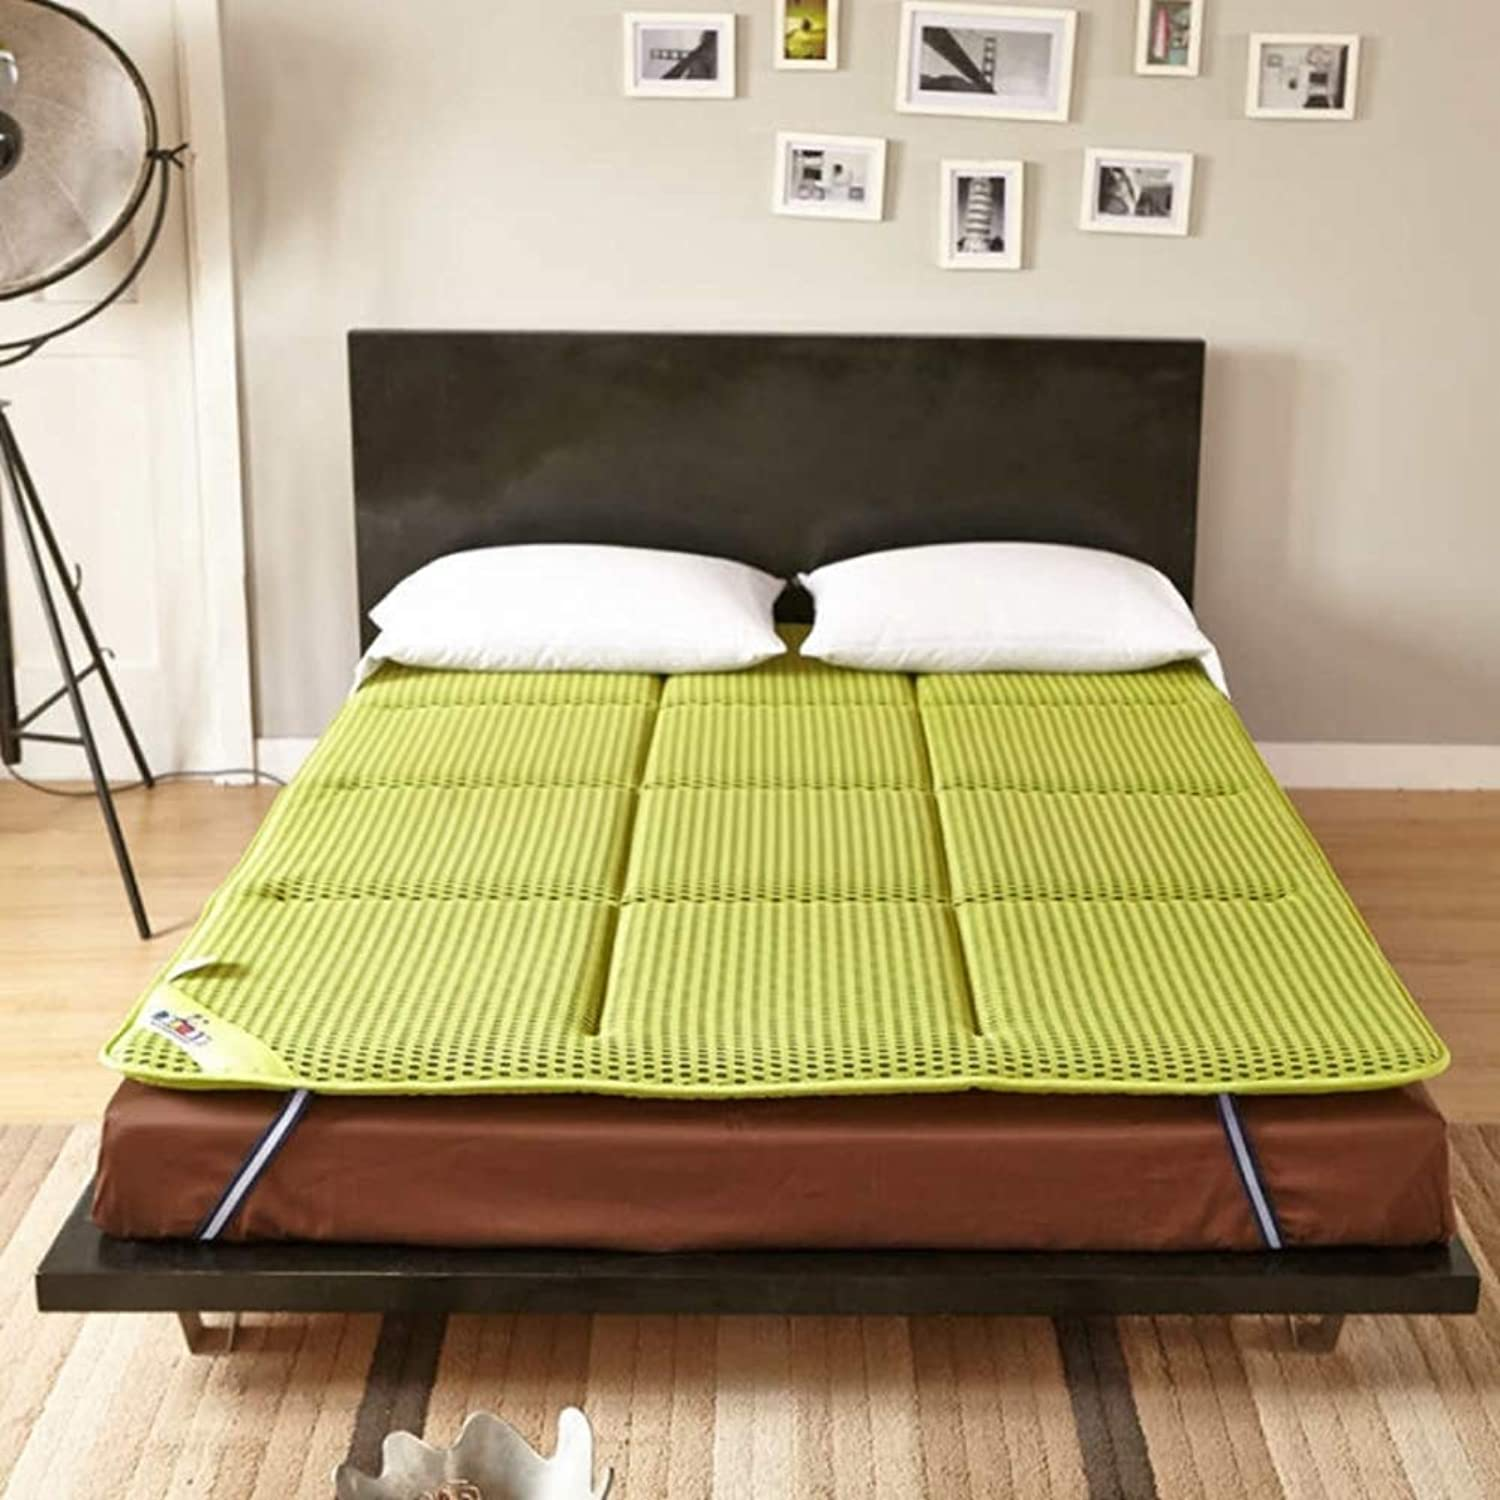 Japanese Tatami futon, Fluffy Breathable Mattress, Antibacterial Anti-mite Double Sleeping pad Breathe Mattress Topper Predector-Green 100x200cm(39x79inch)